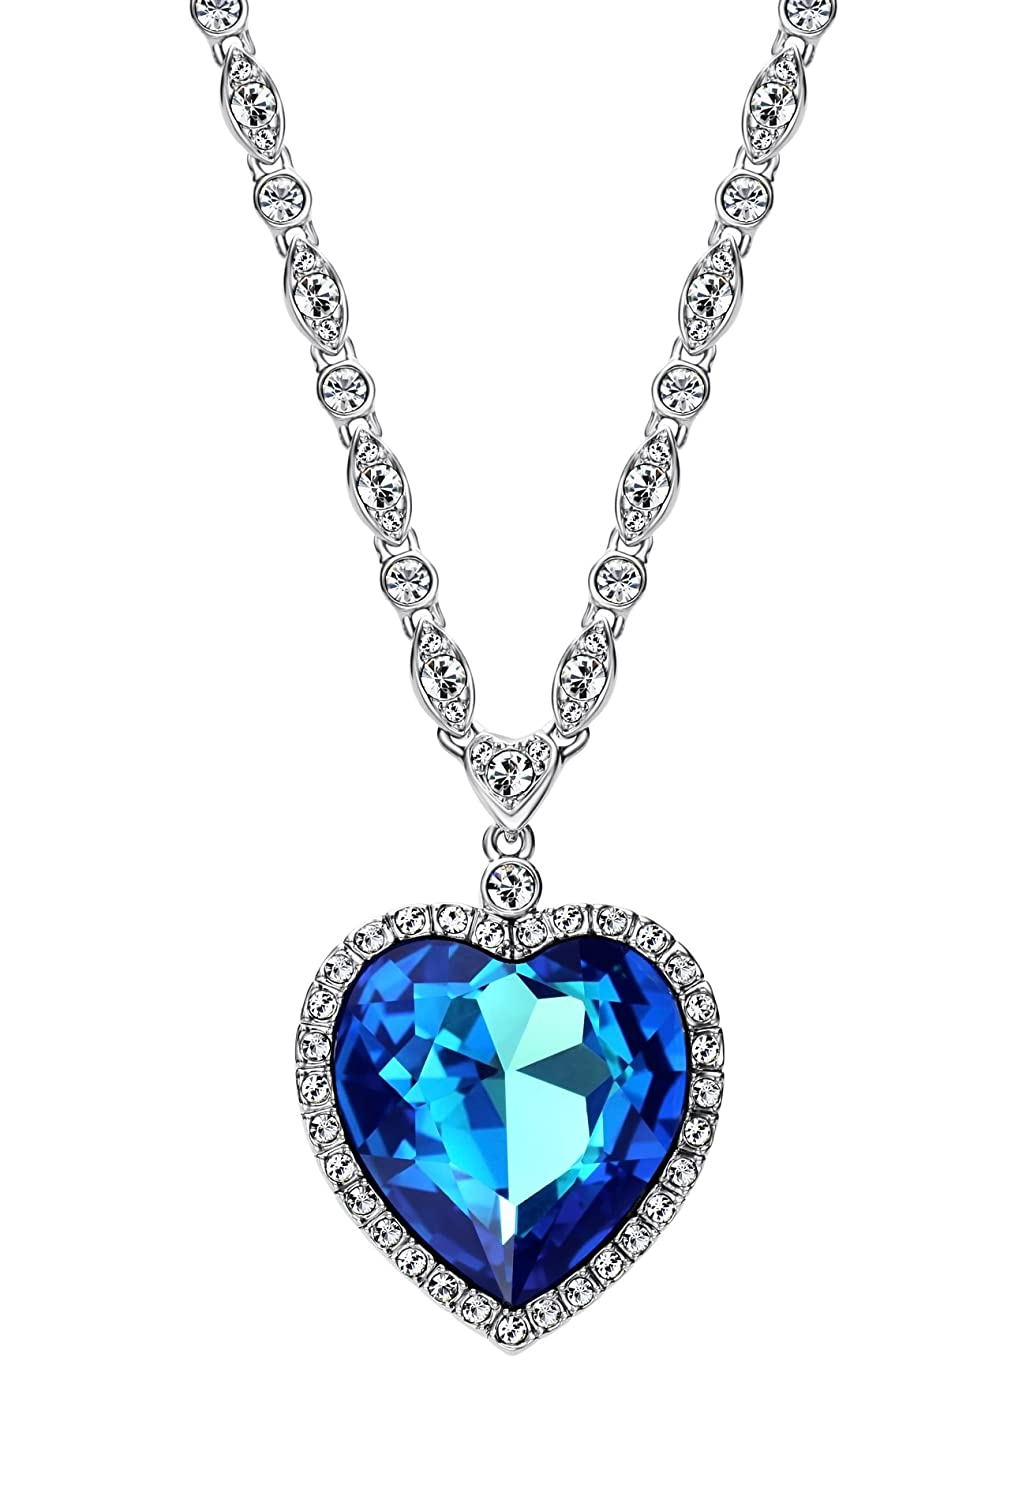 aqua styling product pendant blue stones necklace crystal wrapped